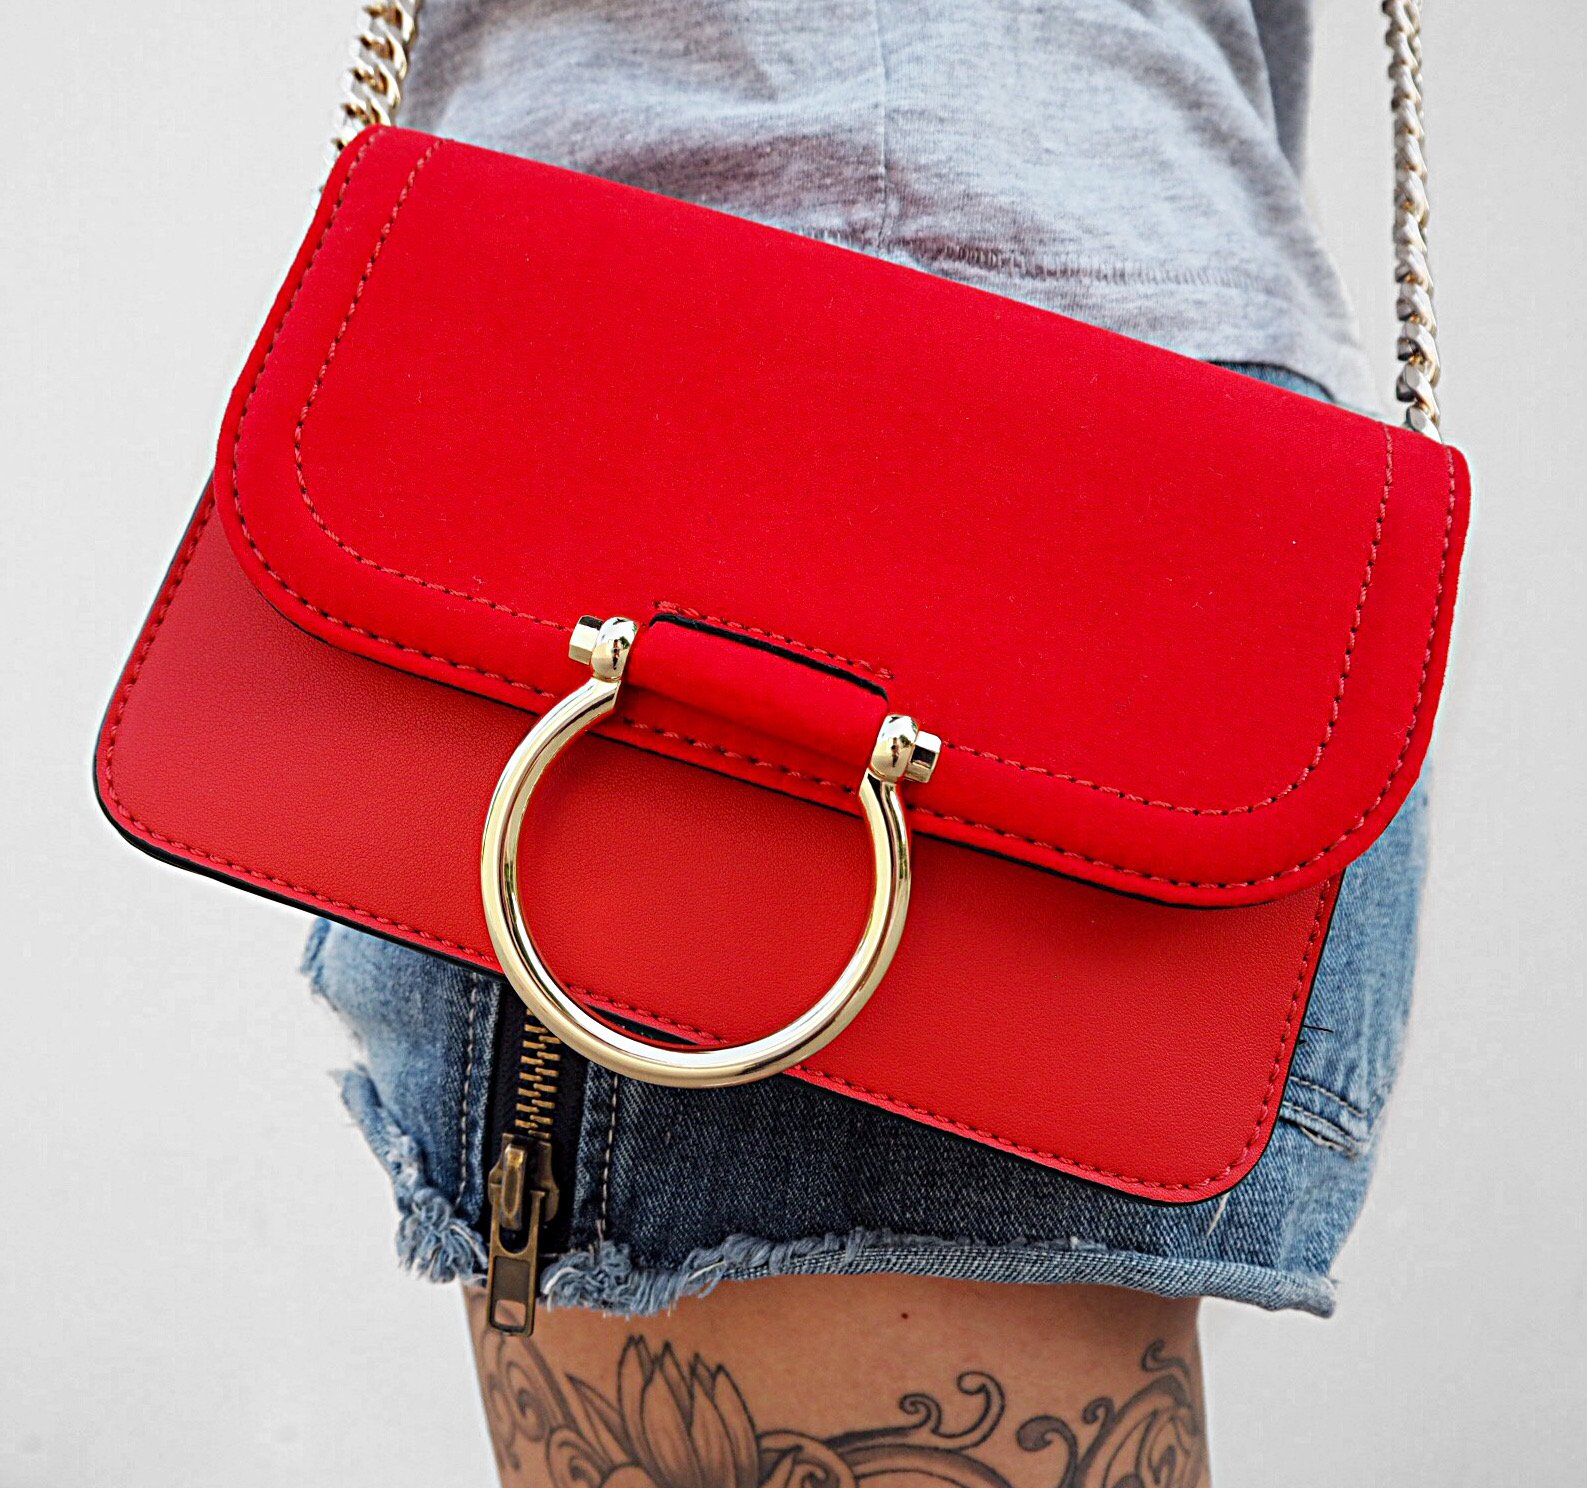 REMY TROPHY Cross Body Bag Topshop, Life in Excess Blog